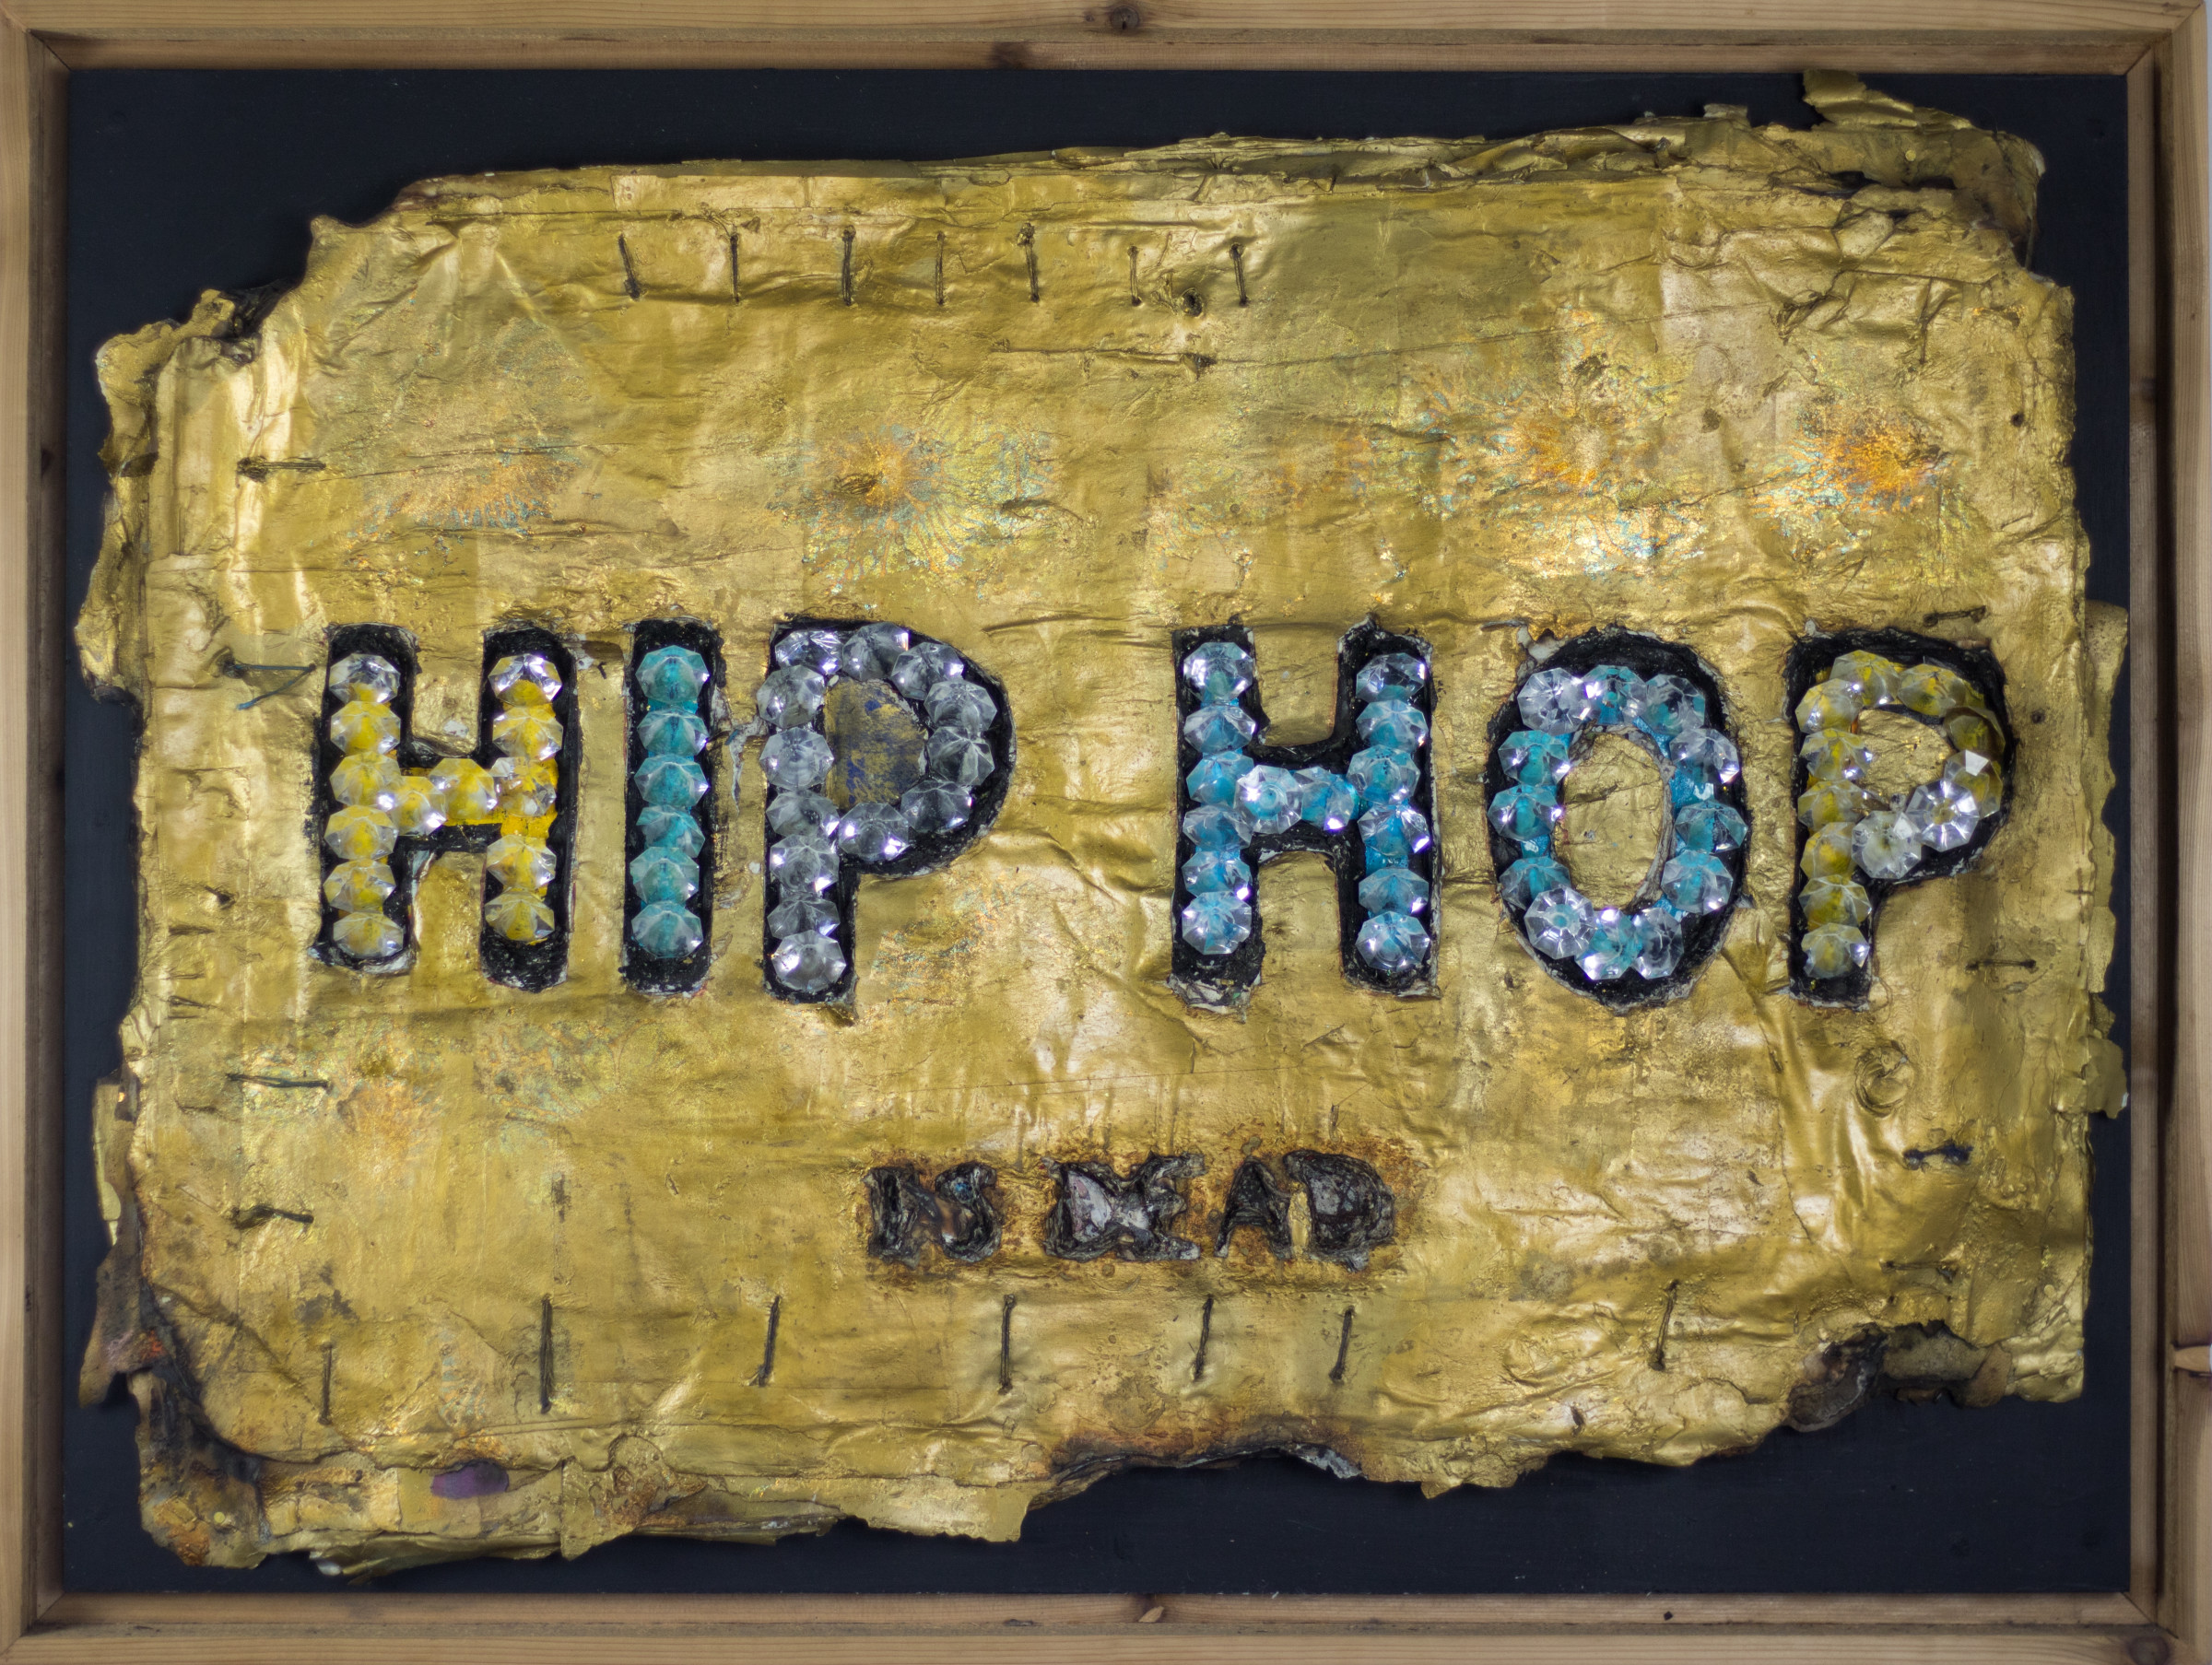 <span class=&#34;link fancybox-details-link&#34;><a href=&#34;/artworks/81-robert-hodge-hip-hop-is-dead-2015/&#34;>View Detail Page</a></span><div class=&#34;artist&#34;><strong>Robert Hodge</strong></div> <div class=&#34;title&#34;><em>Hip Hop is Dead</em>, 2015</div> <div class=&#34;medium&#34;>Acrylic, gold leaf, spray paint, acrylic diamonds and hemp thread on reclaimed paper</div> <div class=&#34;dimensions&#34;>31 x 42 in<br /> 78.7 x 106.7 cm</div><div class=&#34;price&#34;>$5,200.00</div><div class=&#34;copyright_line&#34;>Copyright The Artist</div>